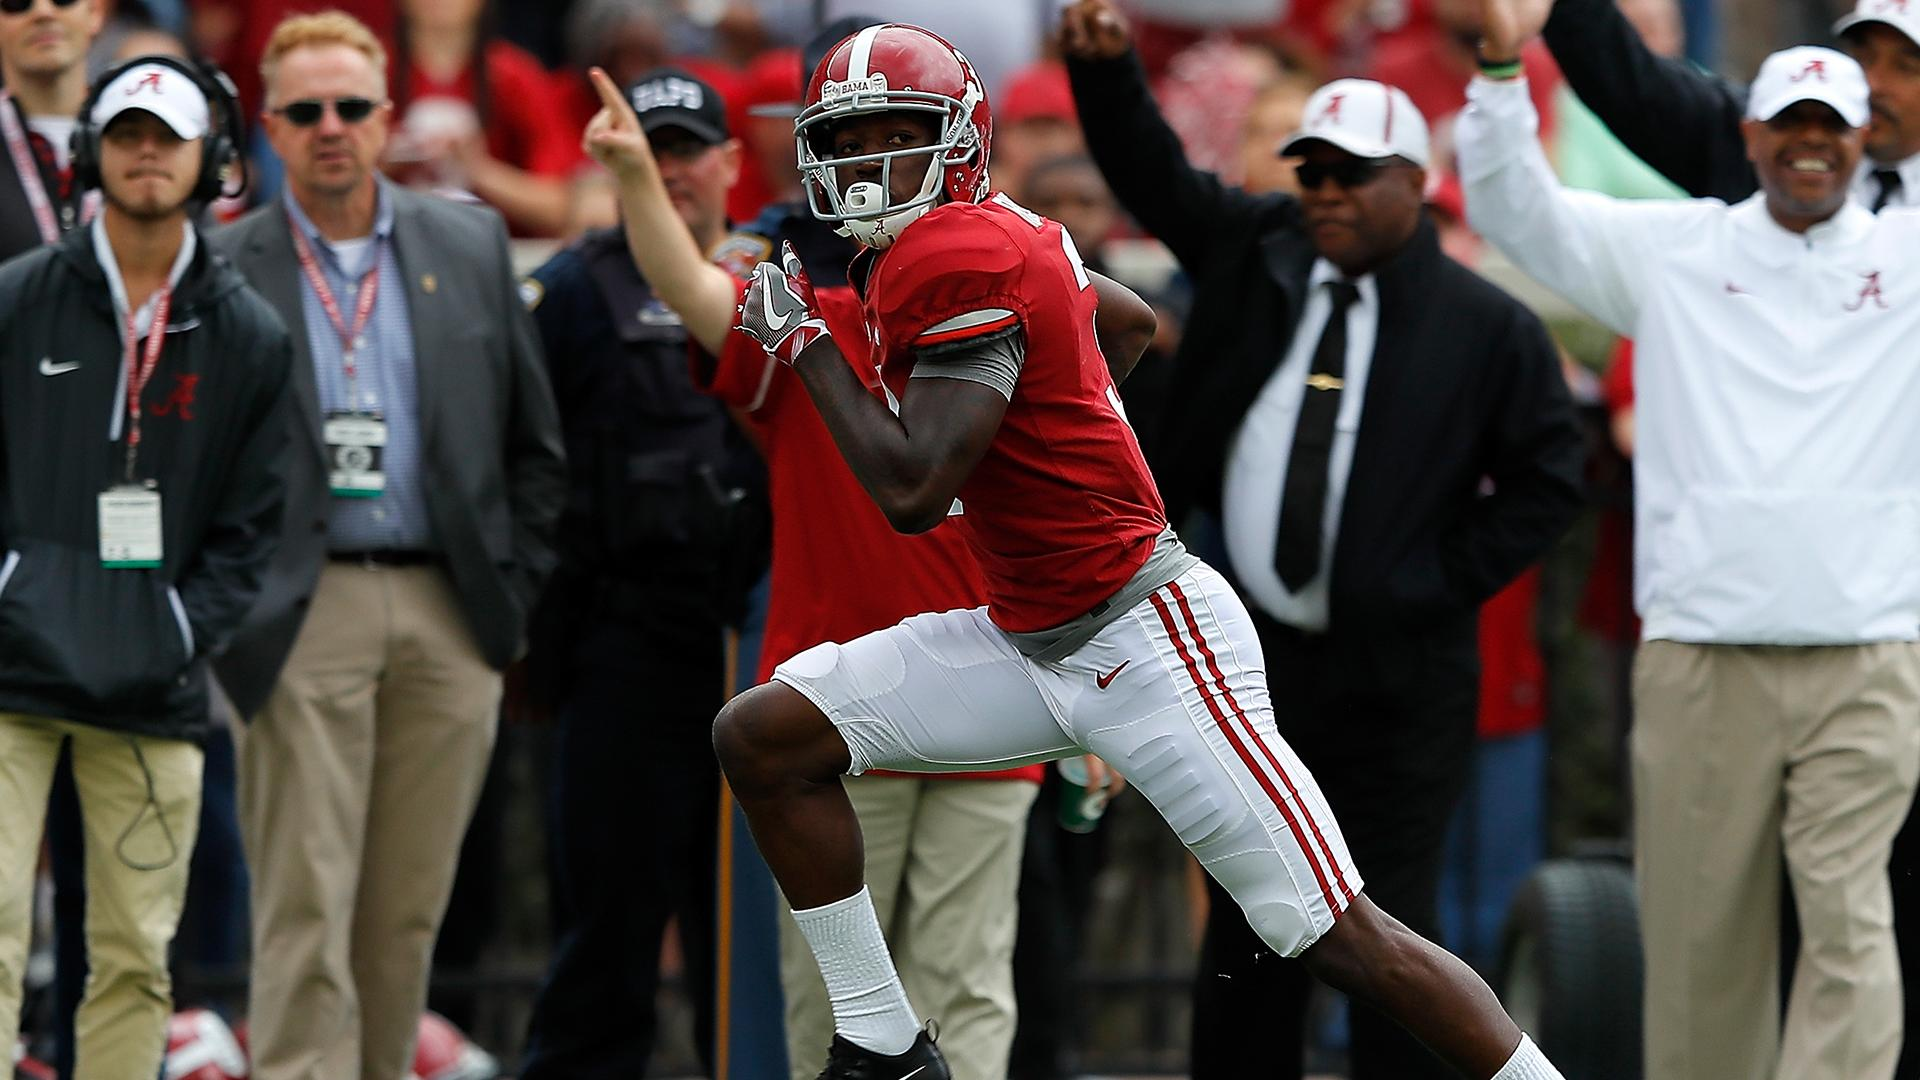 Nfl Draft Calvin Ridley Player Profile Video